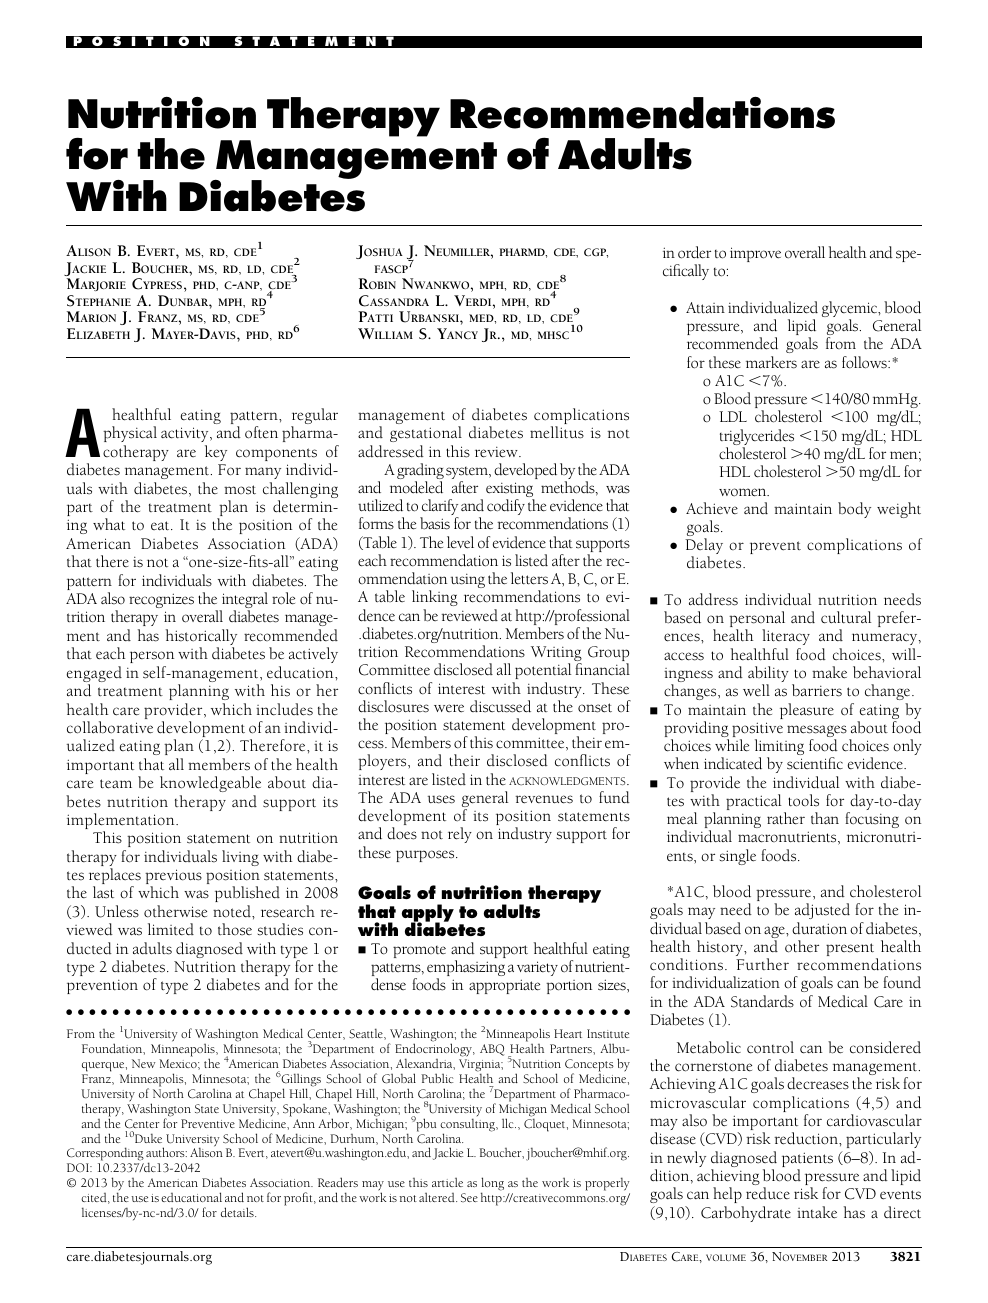 Nutrition Therapy Recommendations for the Management of